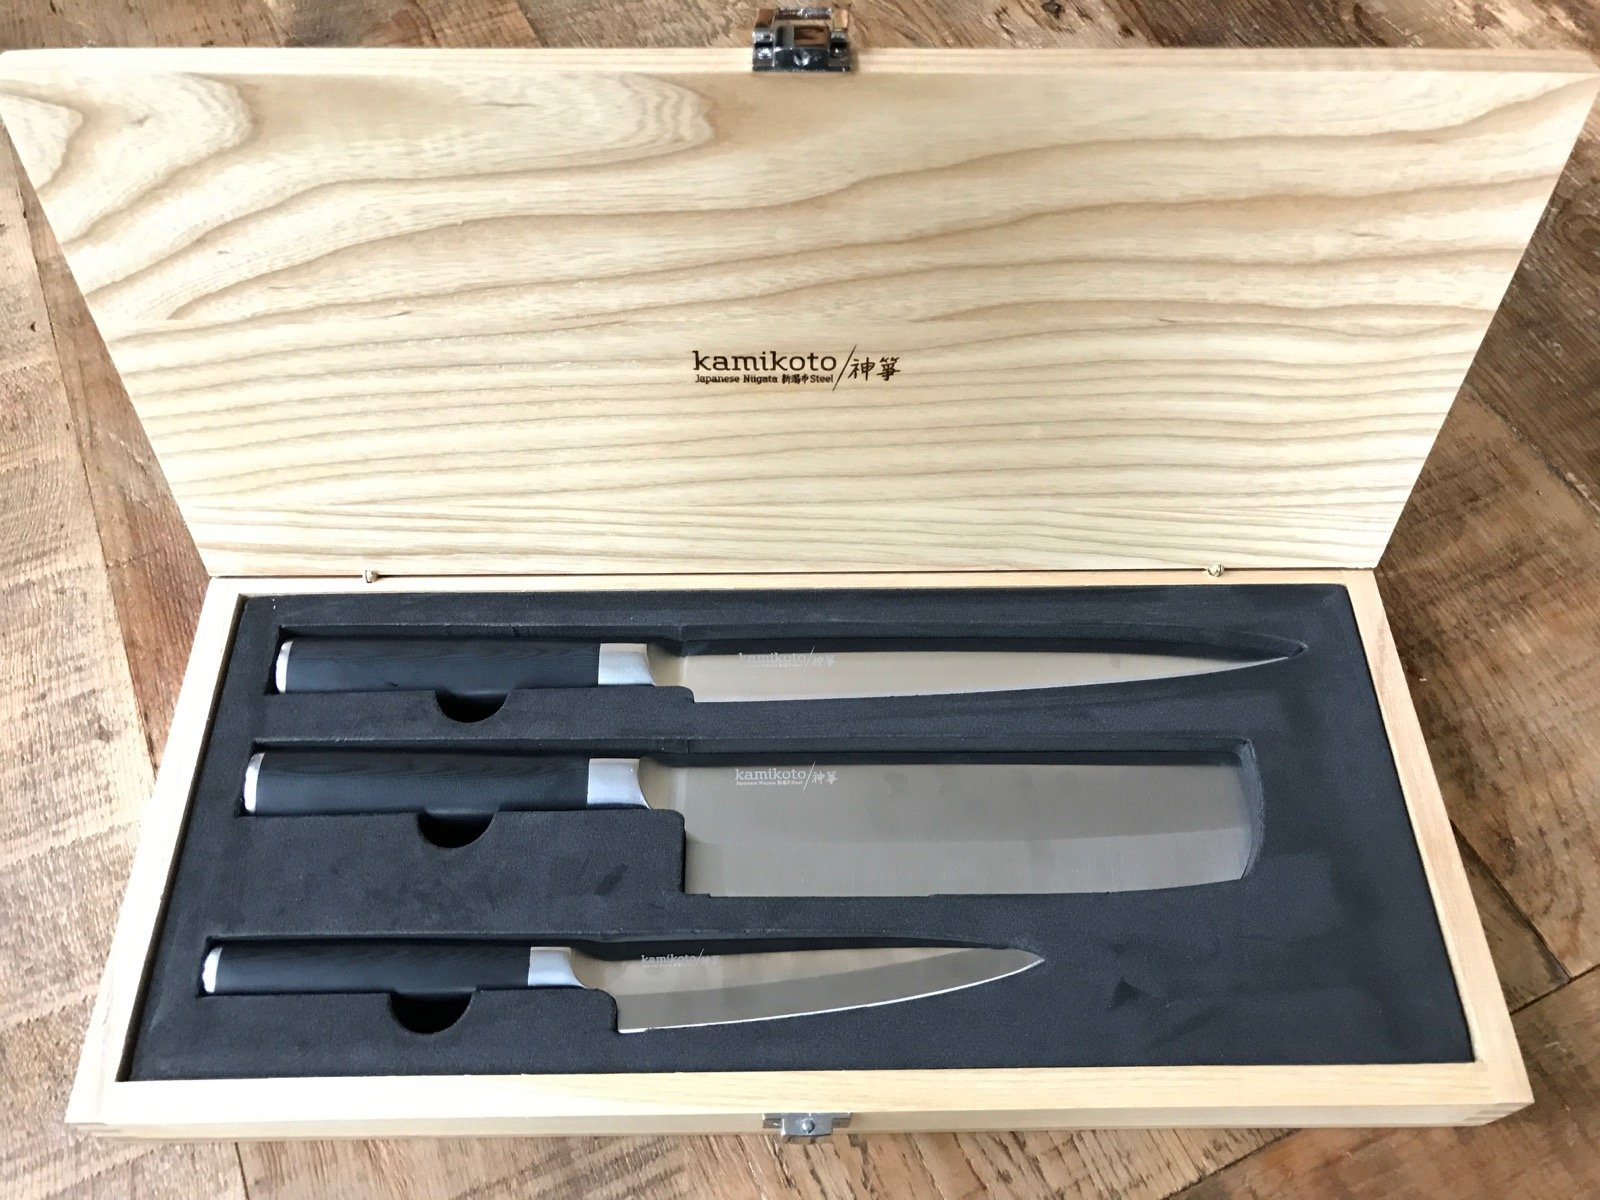 High End Kamikoto Knife Set Giveaway on 100 Days of Real Food